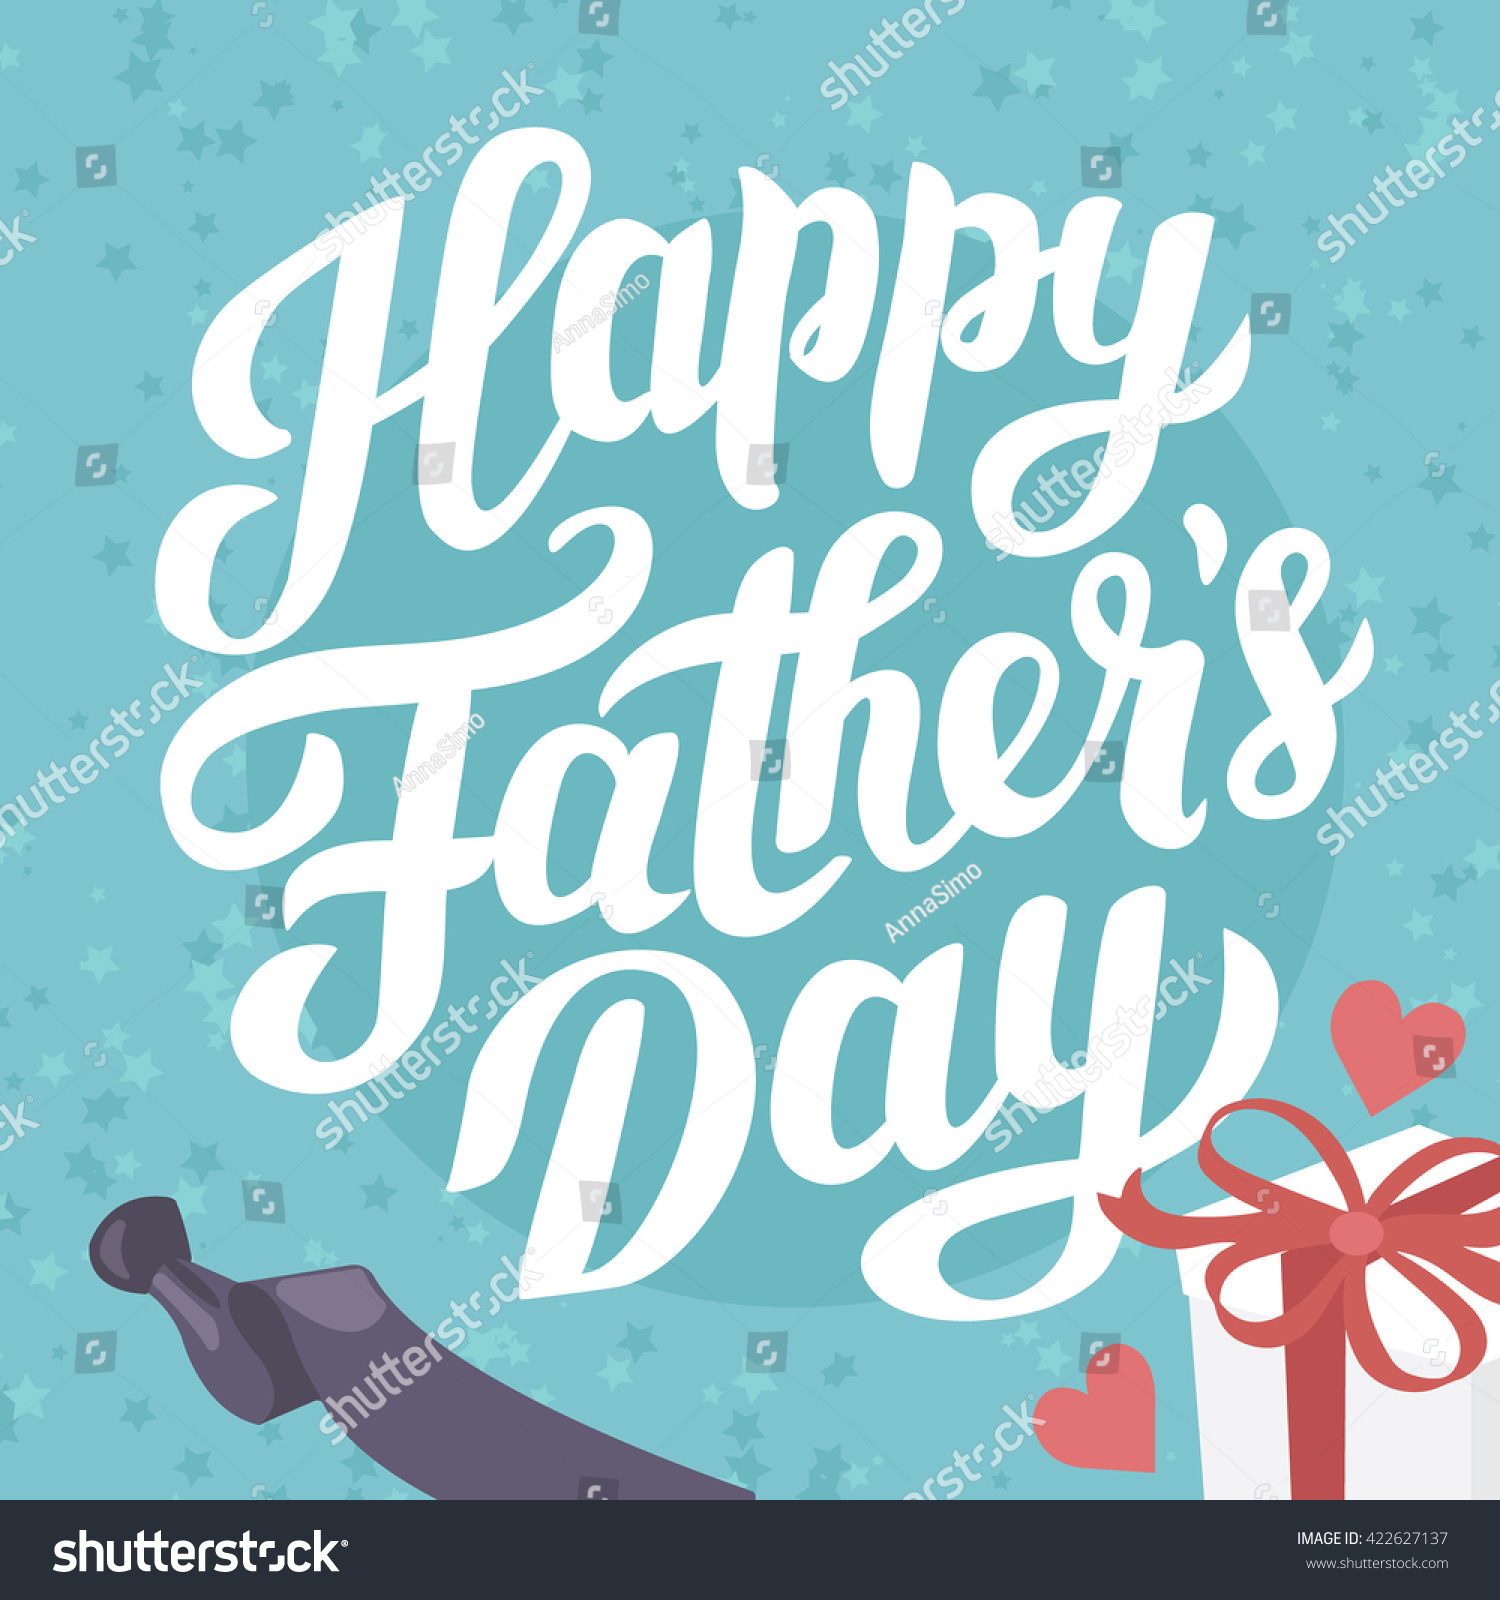 Happy fathers day holiday greeting poster stock vector royalty free happy fathers day holiday greeting poster m4hsunfo